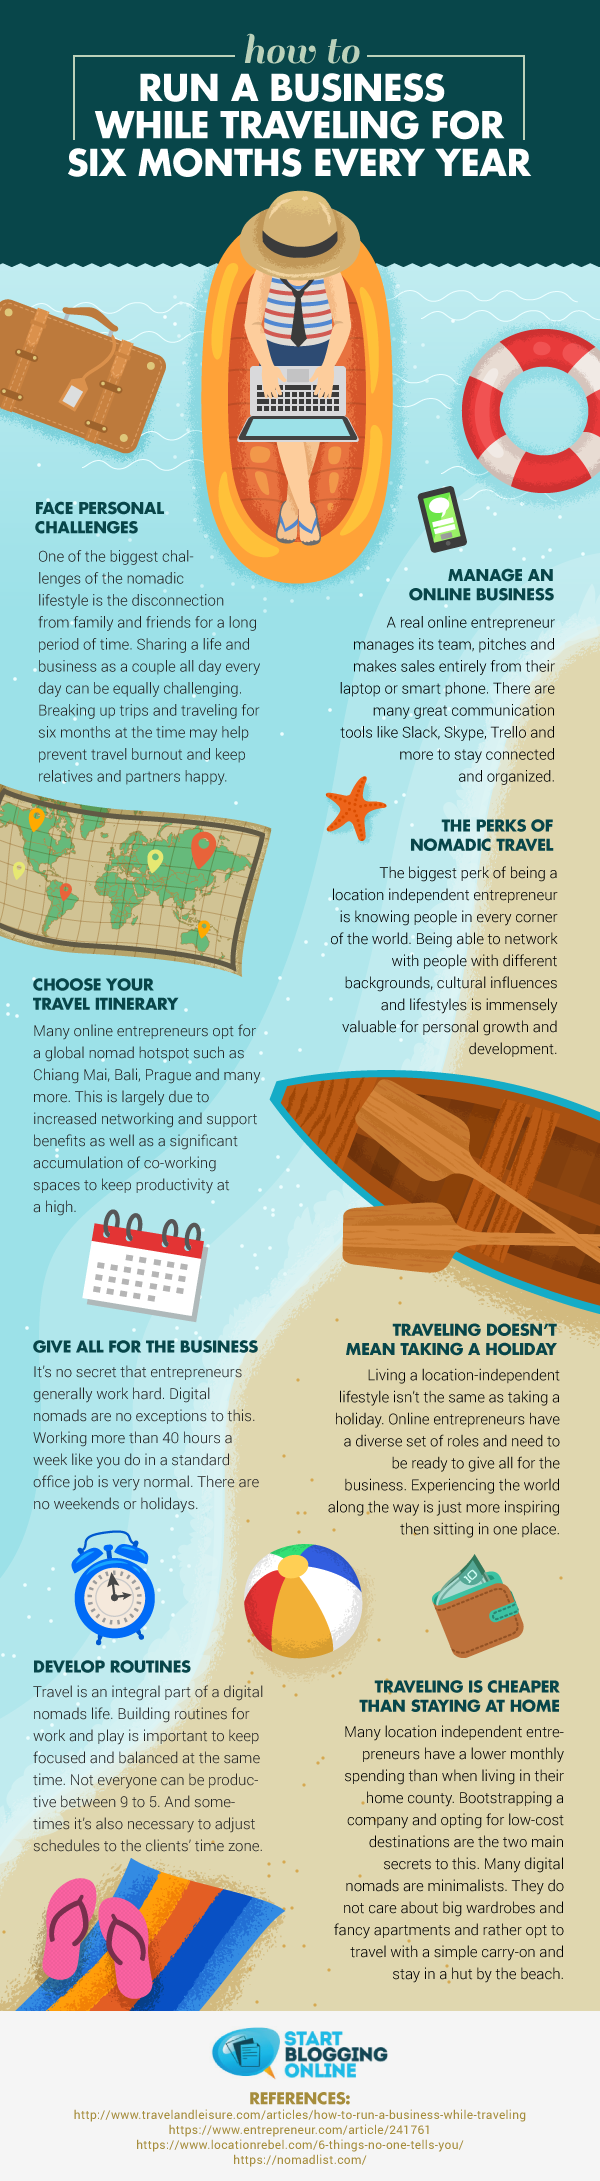 Run A Business While Traveling